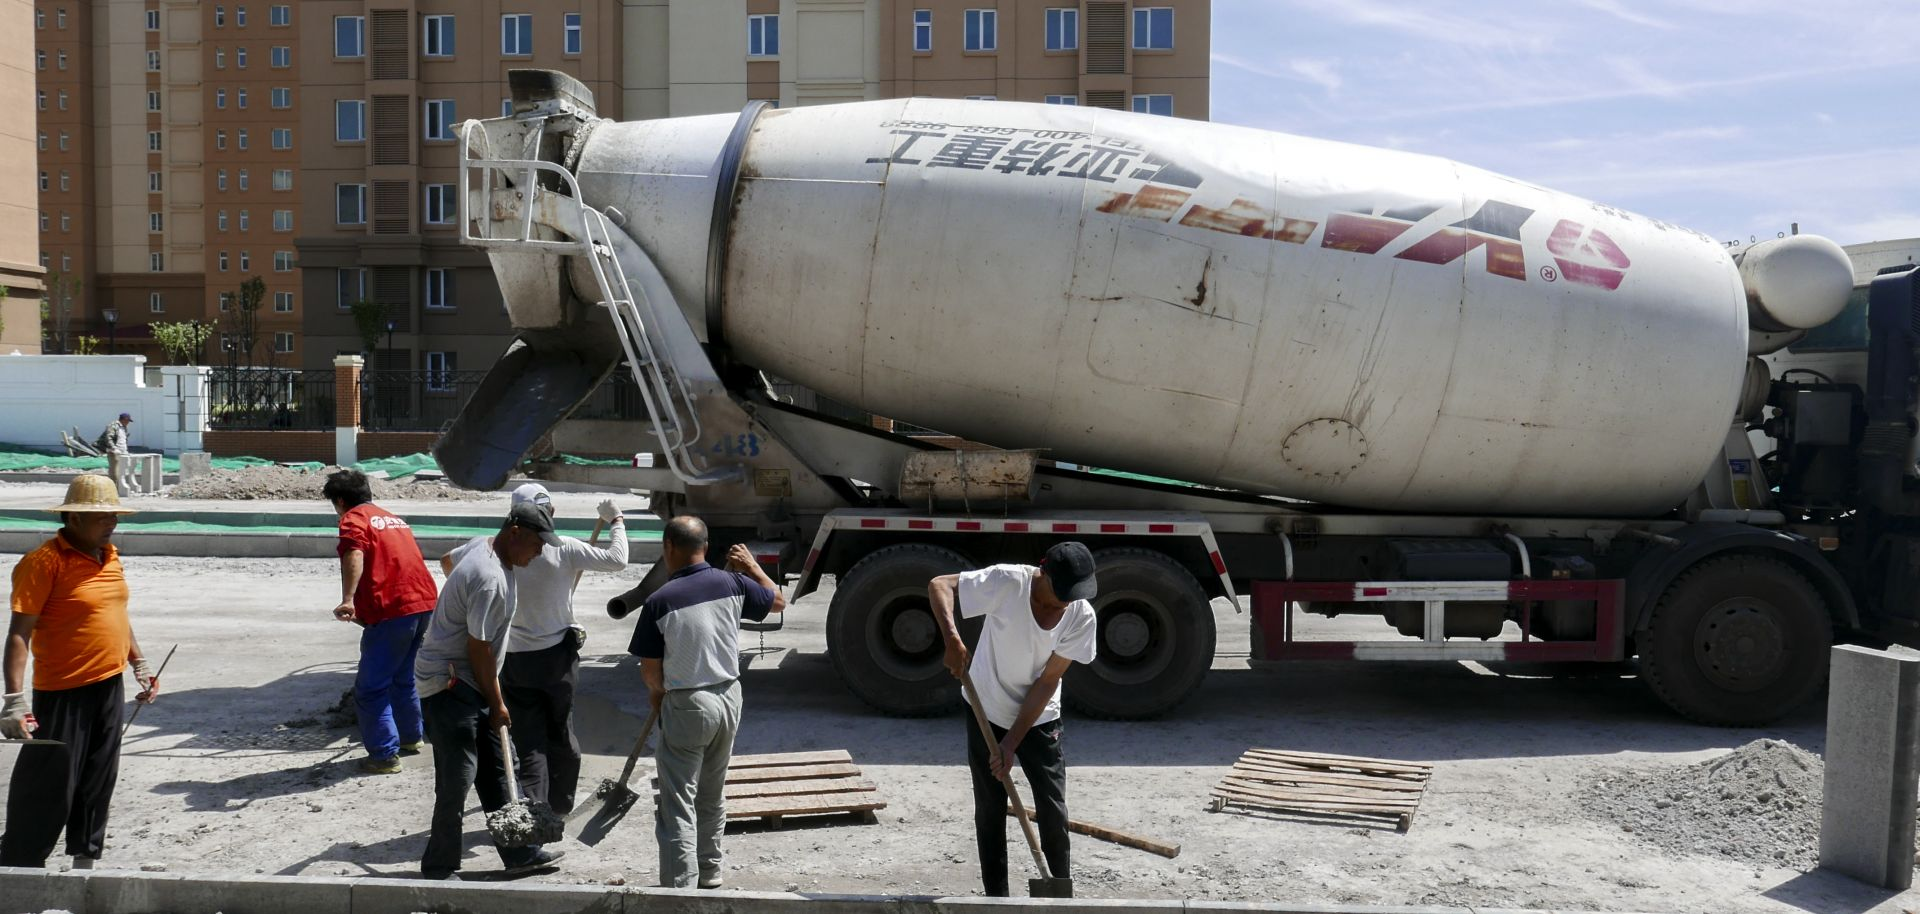 A cement tank car and workers are working on a construction site of a new residential district.